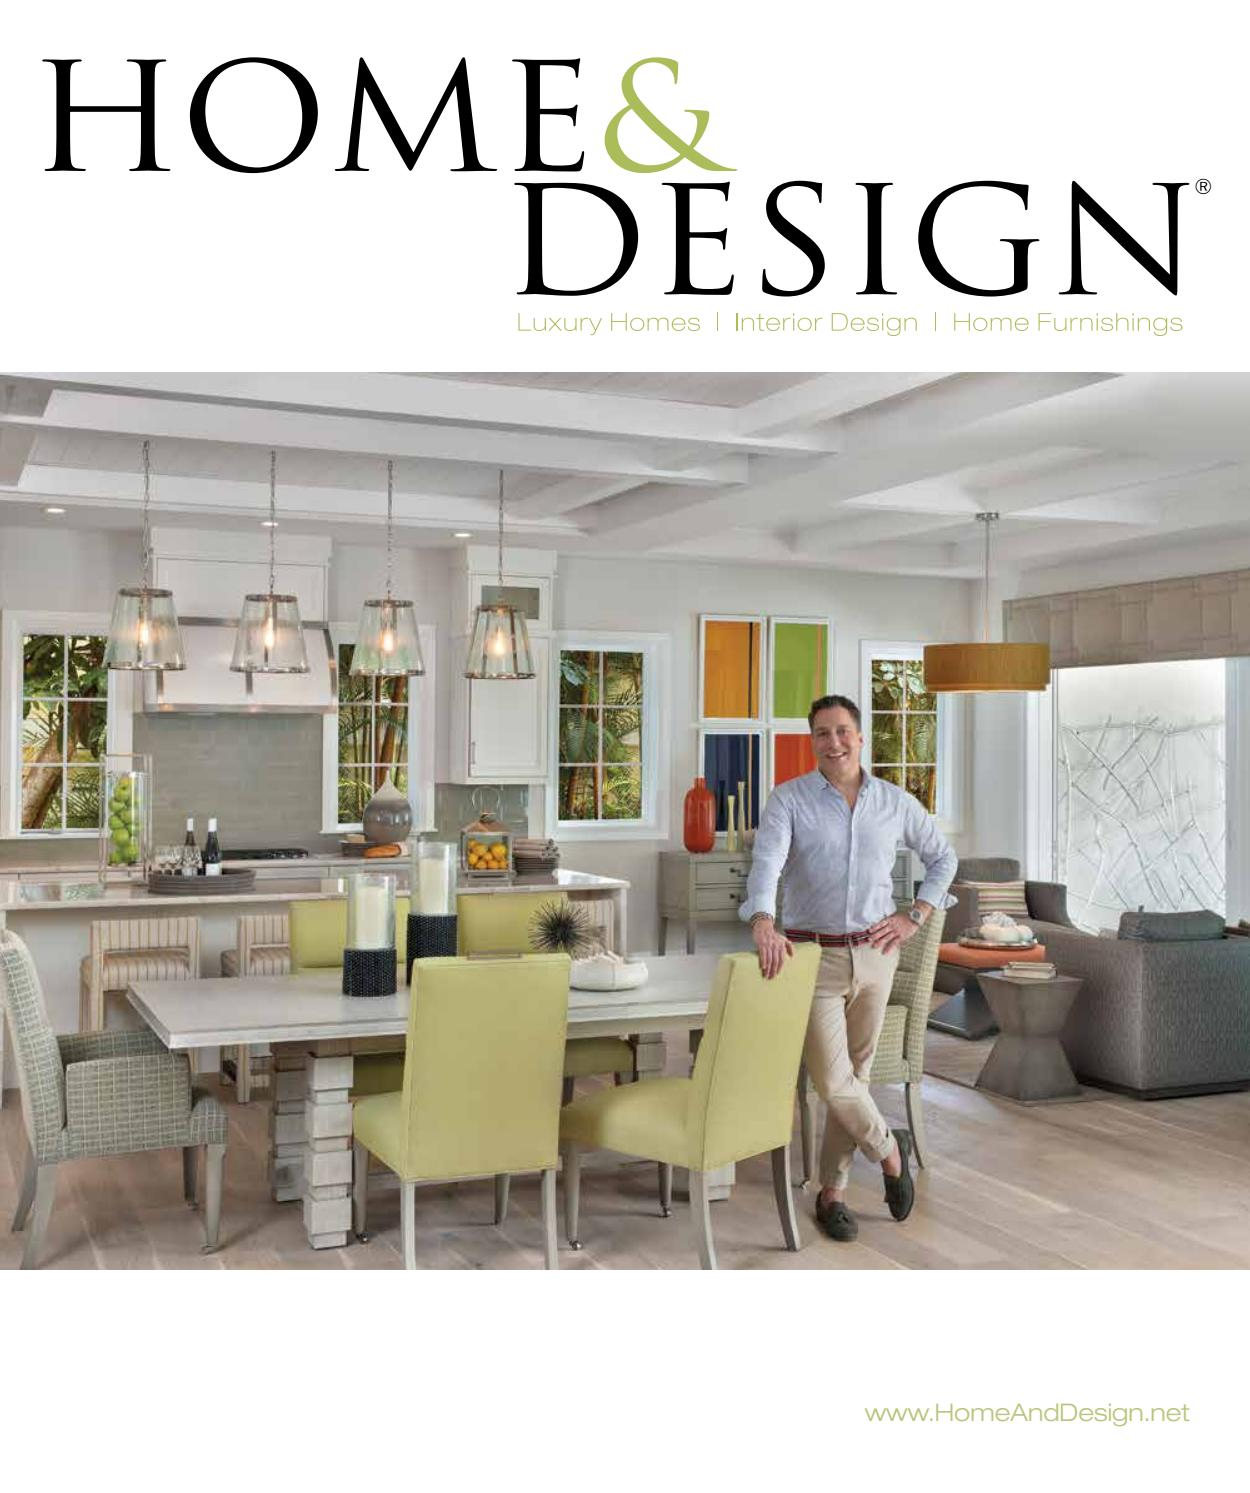 Home Design Magazine home & design magazine 2016 southwest florida editionanthony